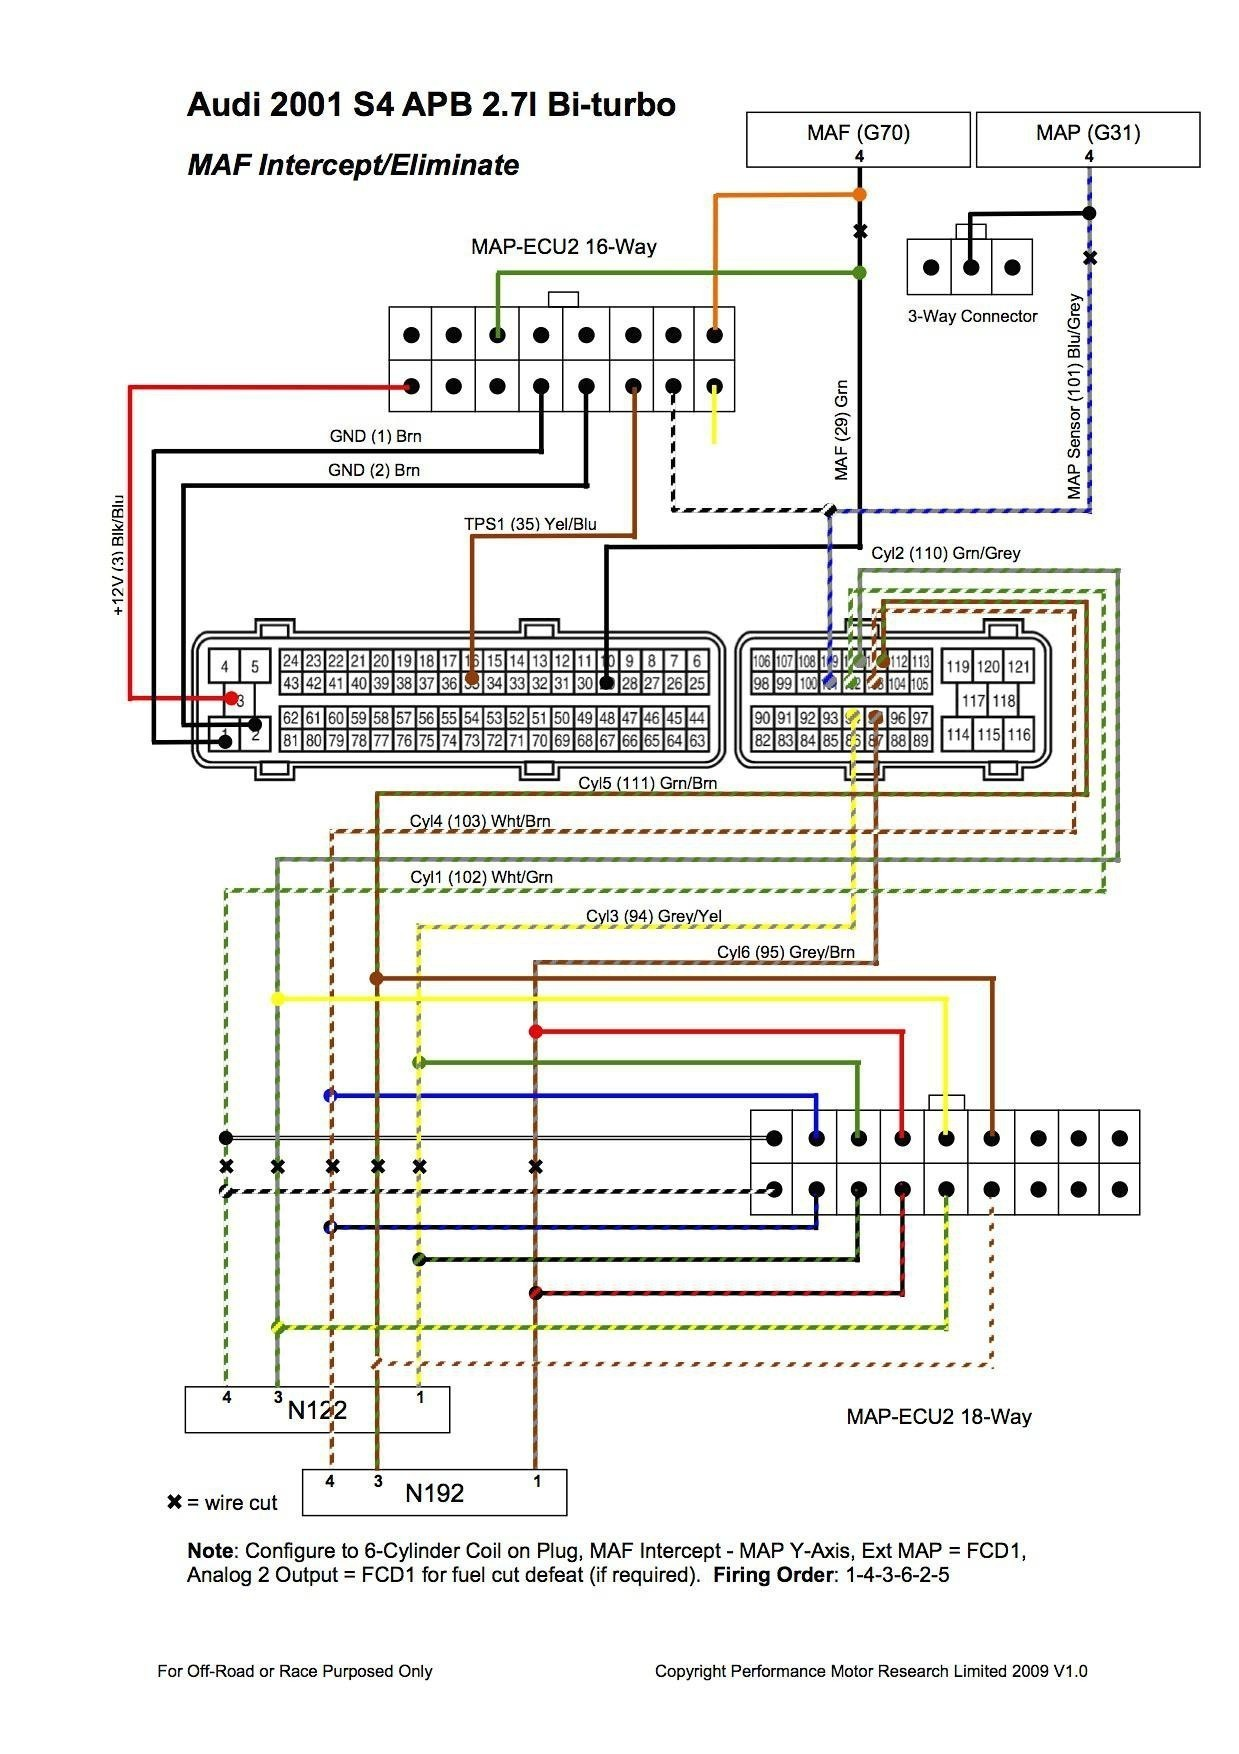 audi wiring diagram 2004 all kind of wiring diagrams u2022 rh wiringdiagramweb today 98 Audi A4 Fuse Diagram Audi Fuse Box Diagram